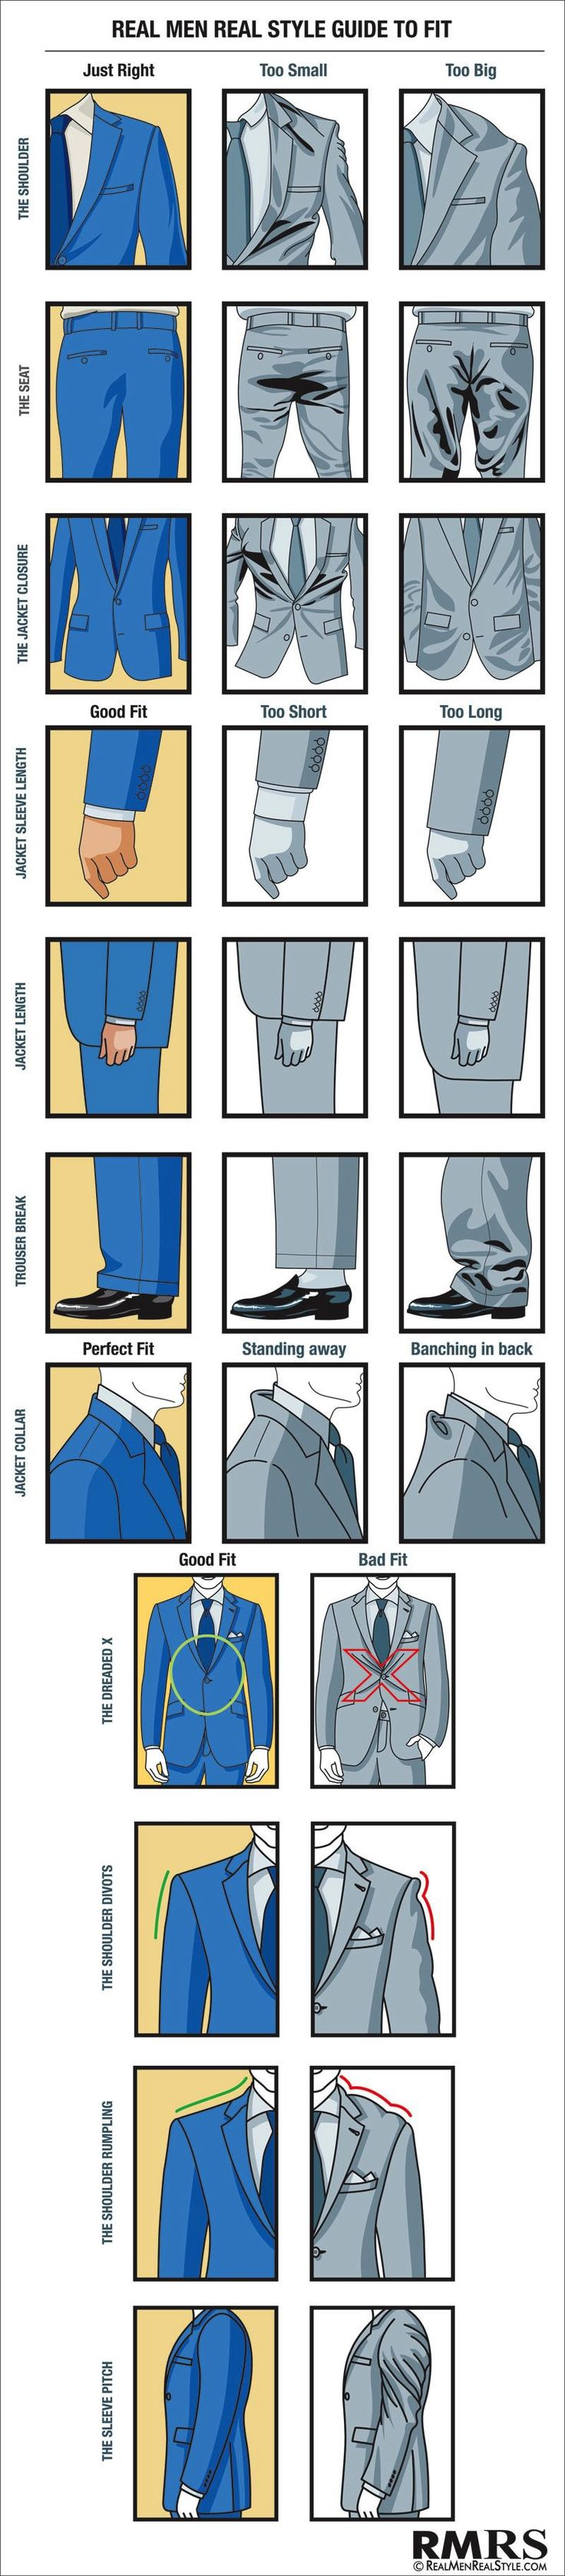 Real men real style fitting guide for men #rmrs #men #style #fashion #guide #affiliate